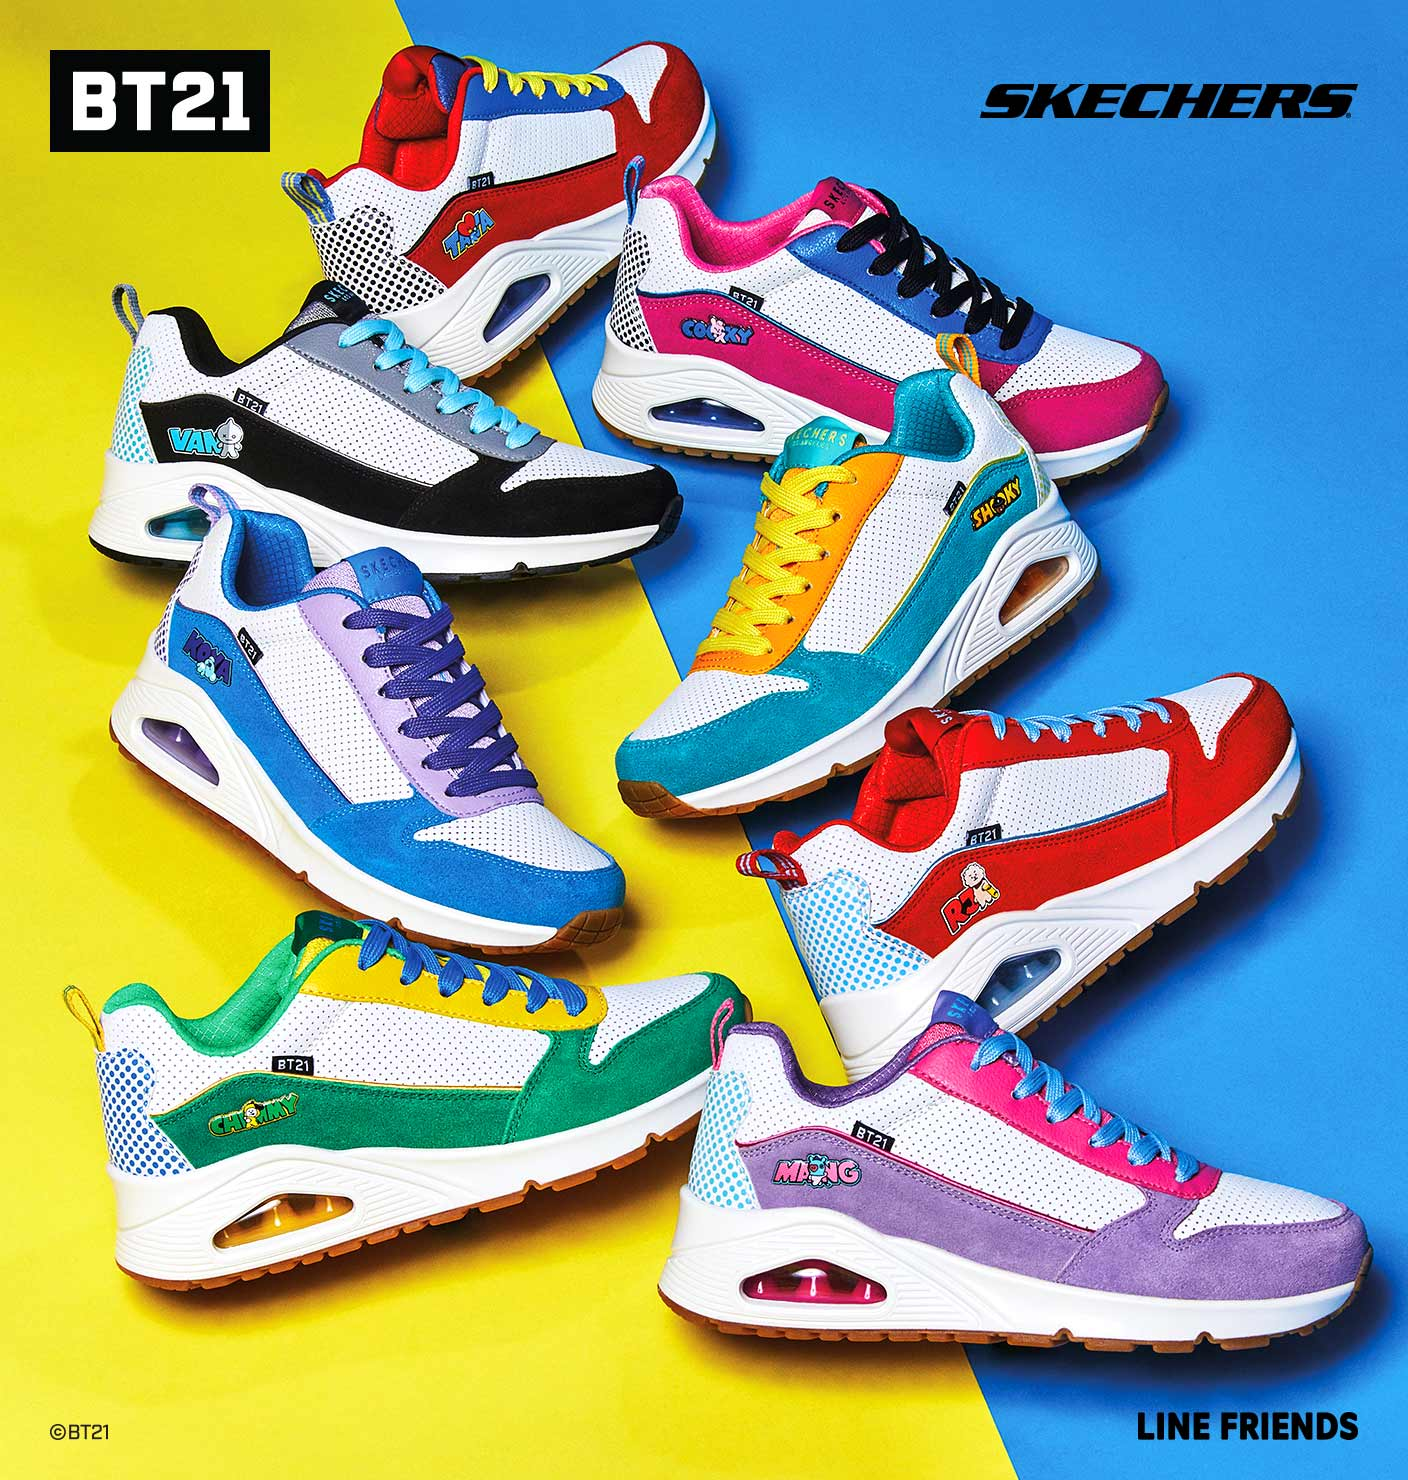 huge discount 57fee a3893 Shop for SKECHERS Shoes, Sneakers, Sport, Performance ...